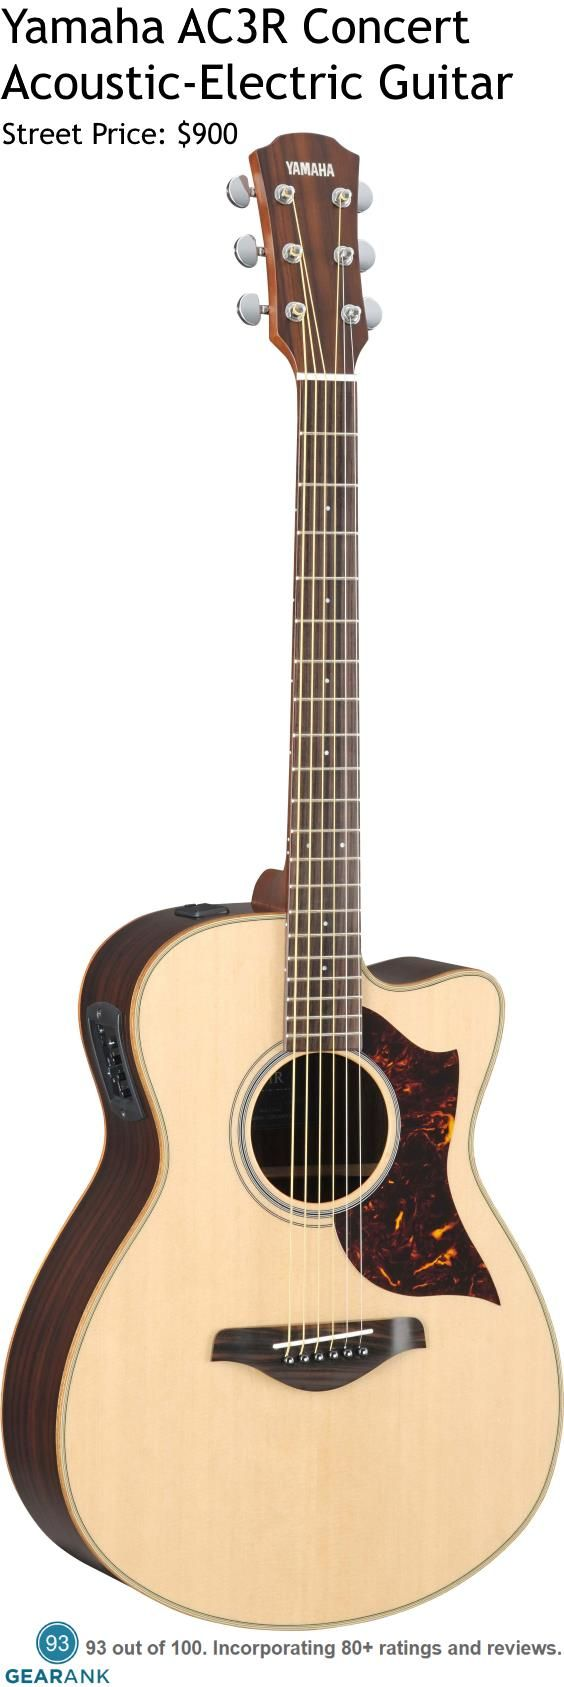 Yamaha AC3R Concert Acoustic-Electric Guitar. Yamaha's AC3R is one of their highest rated guitars and comes with an all solid wood concert sized body and Yamaha's premium System 63 SRT pickup and modelling preamp -the modelling options are designed to represent different microphone sounds. For a detailed guide to acoustic guitars see https://www.gearank.com/guides/acoustic-guitars